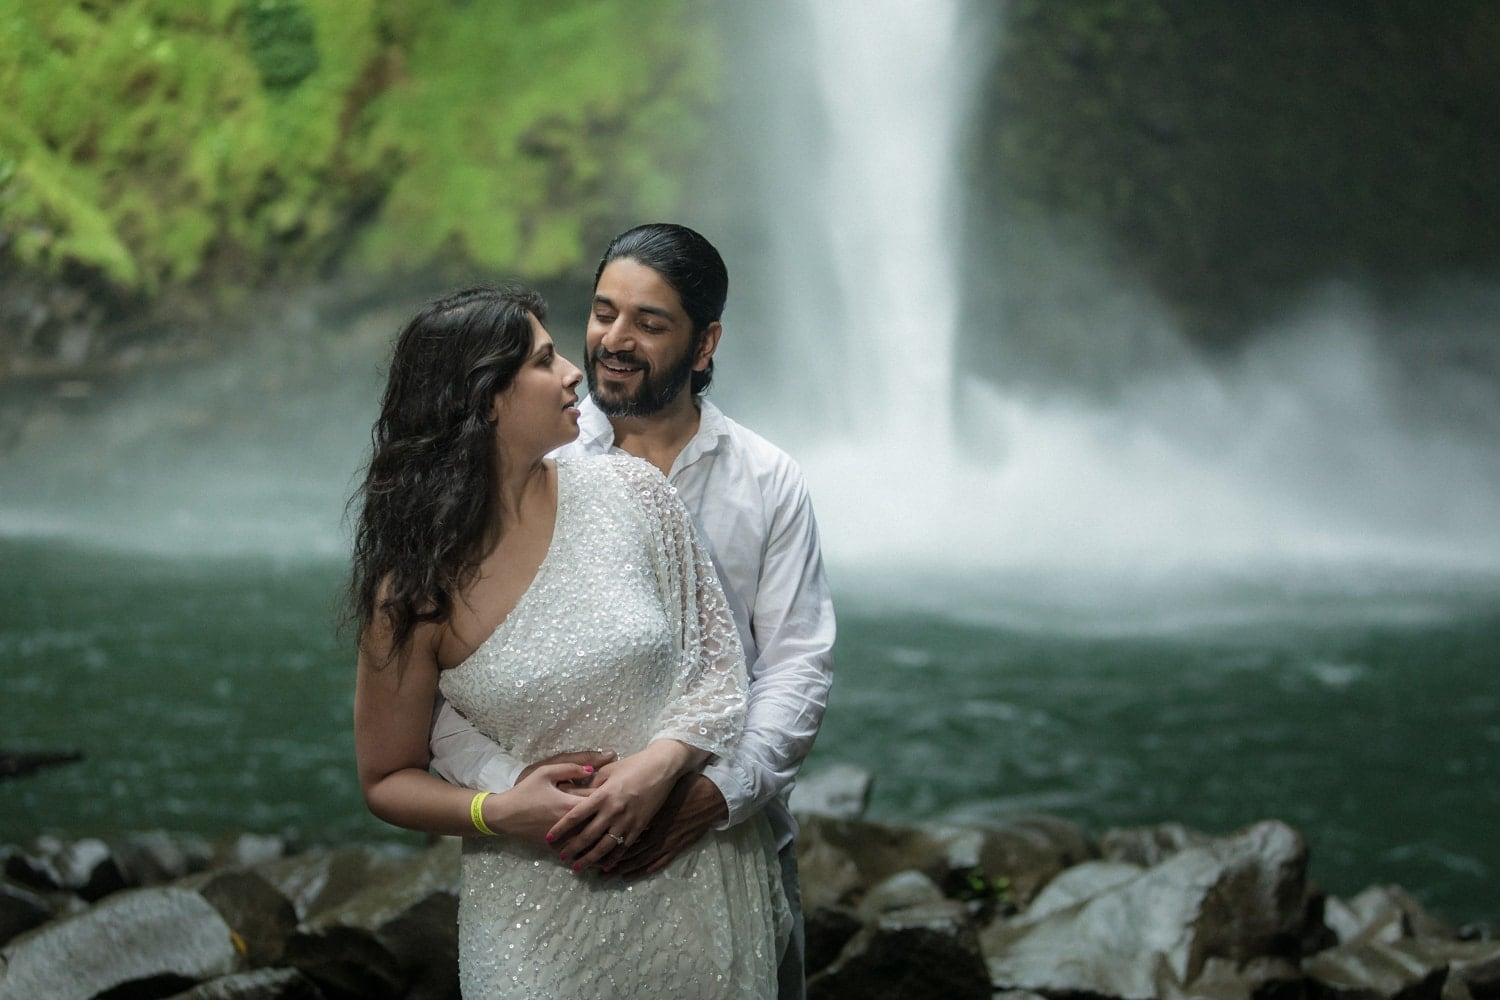 Amberene-Farhan-Engagement-Photos-La-Fortuna-Waterfall-11.jpg